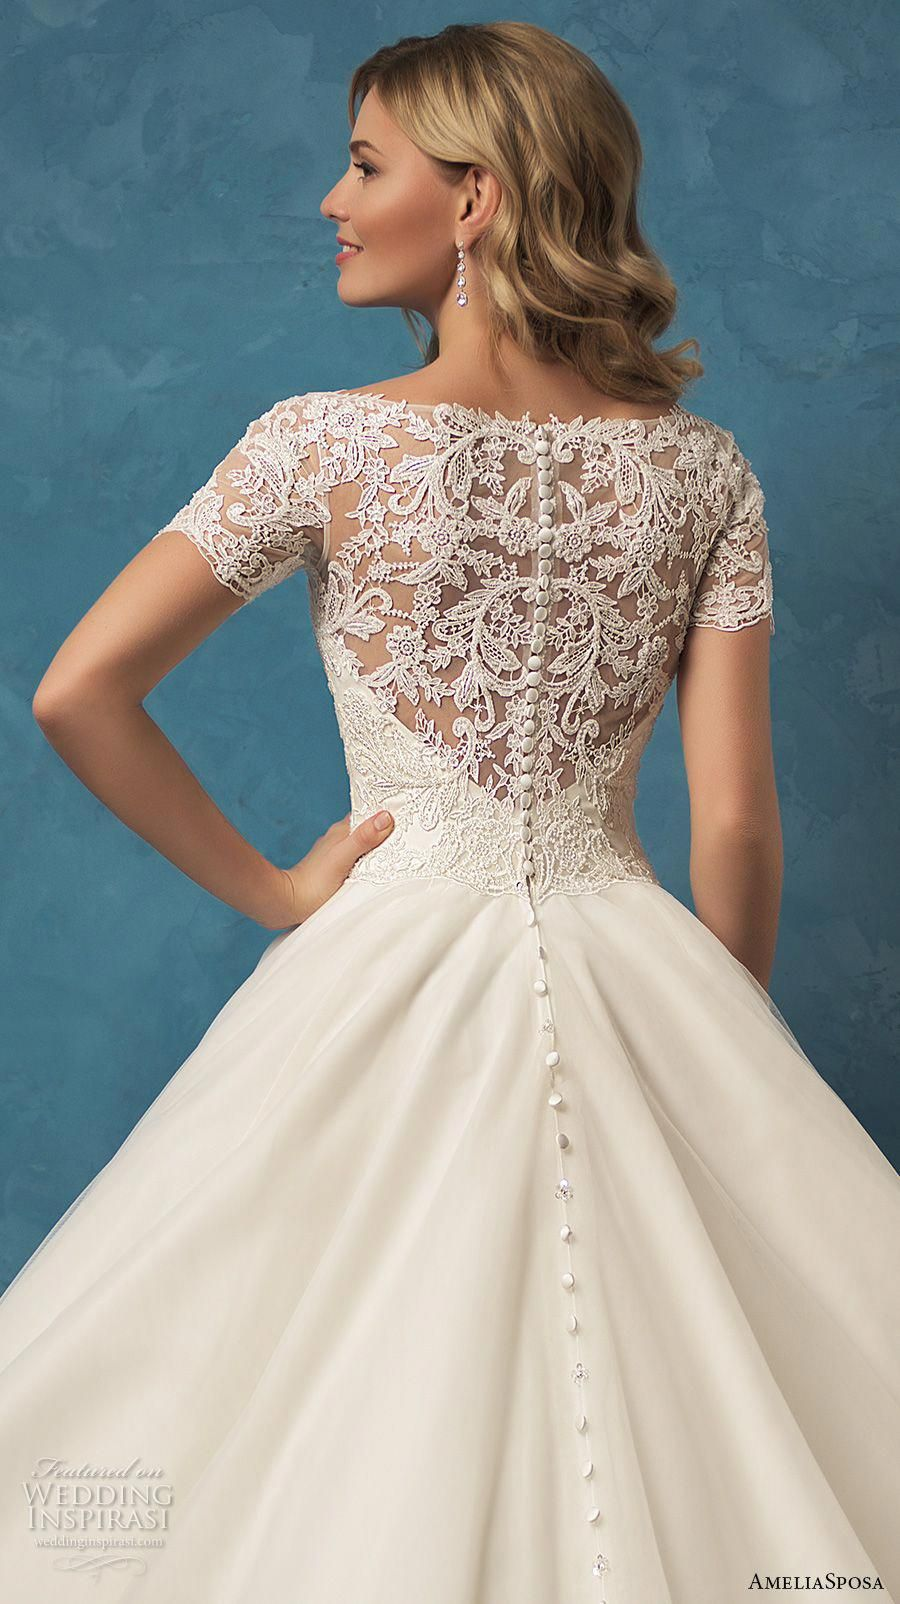 Amelia sposa bridal short sleeves heavily embellished bodice